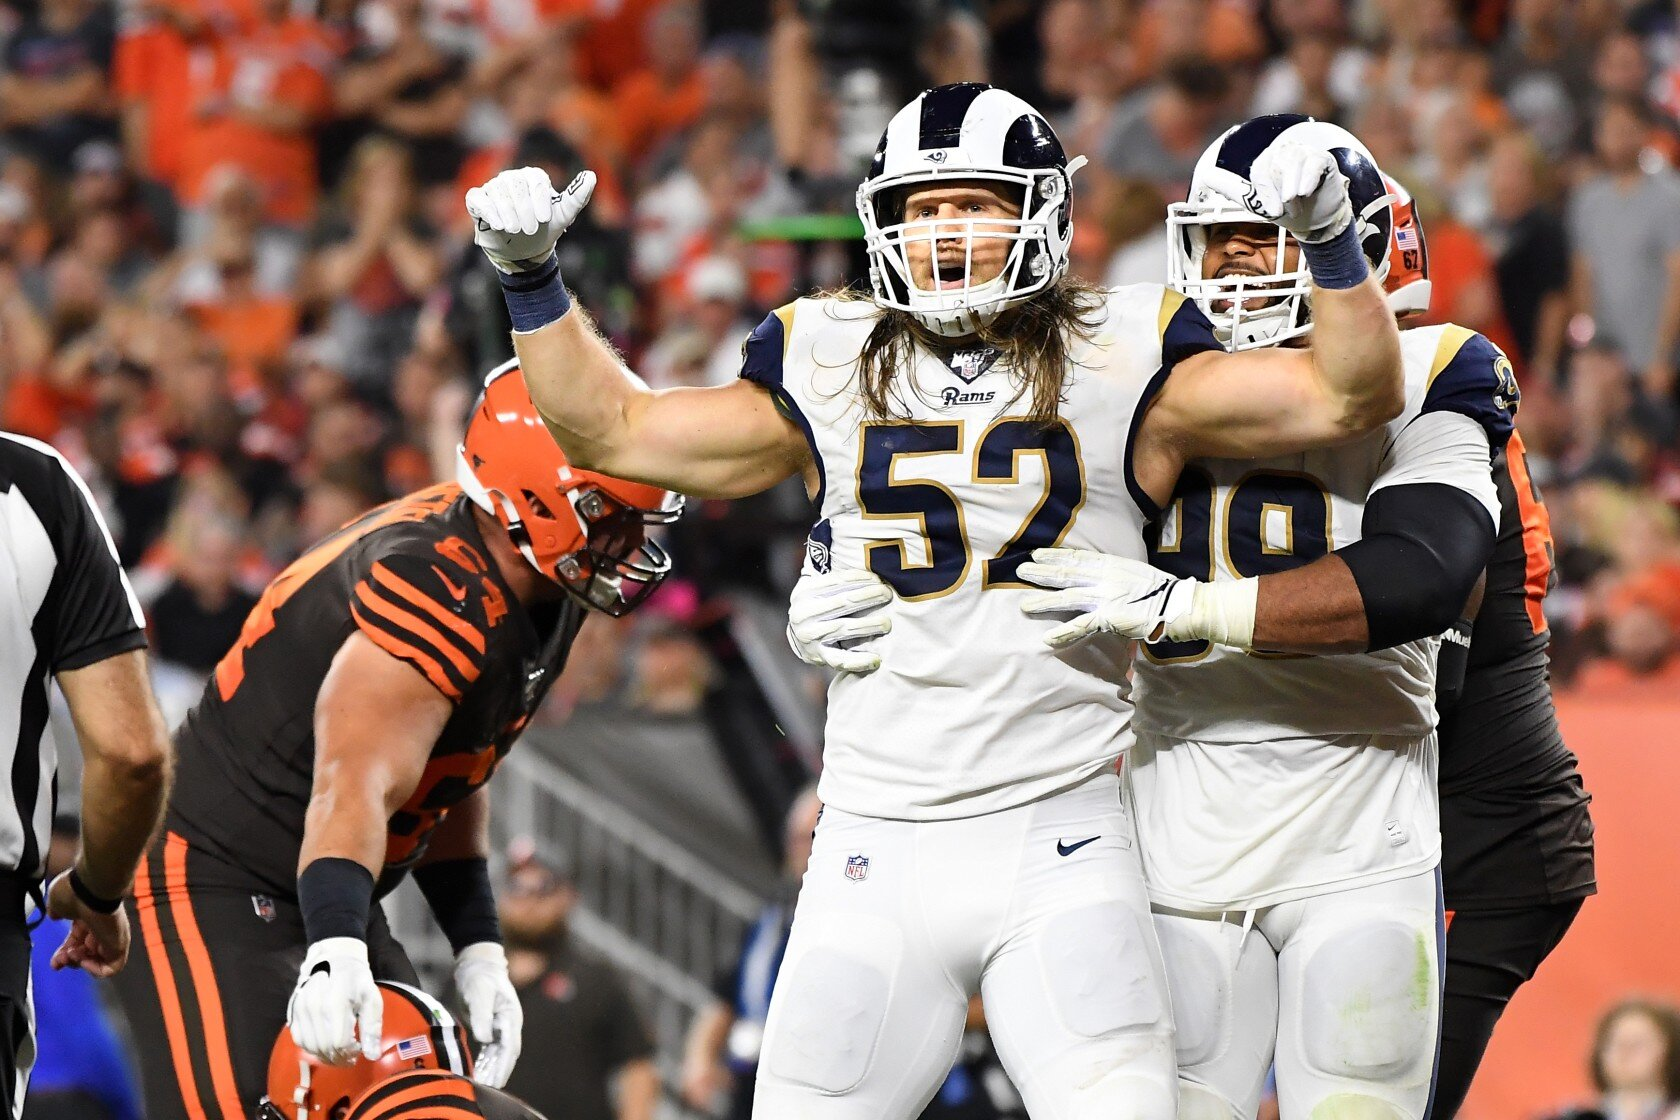 Clay Matthews III & Aaron Donald celebrating a sack.